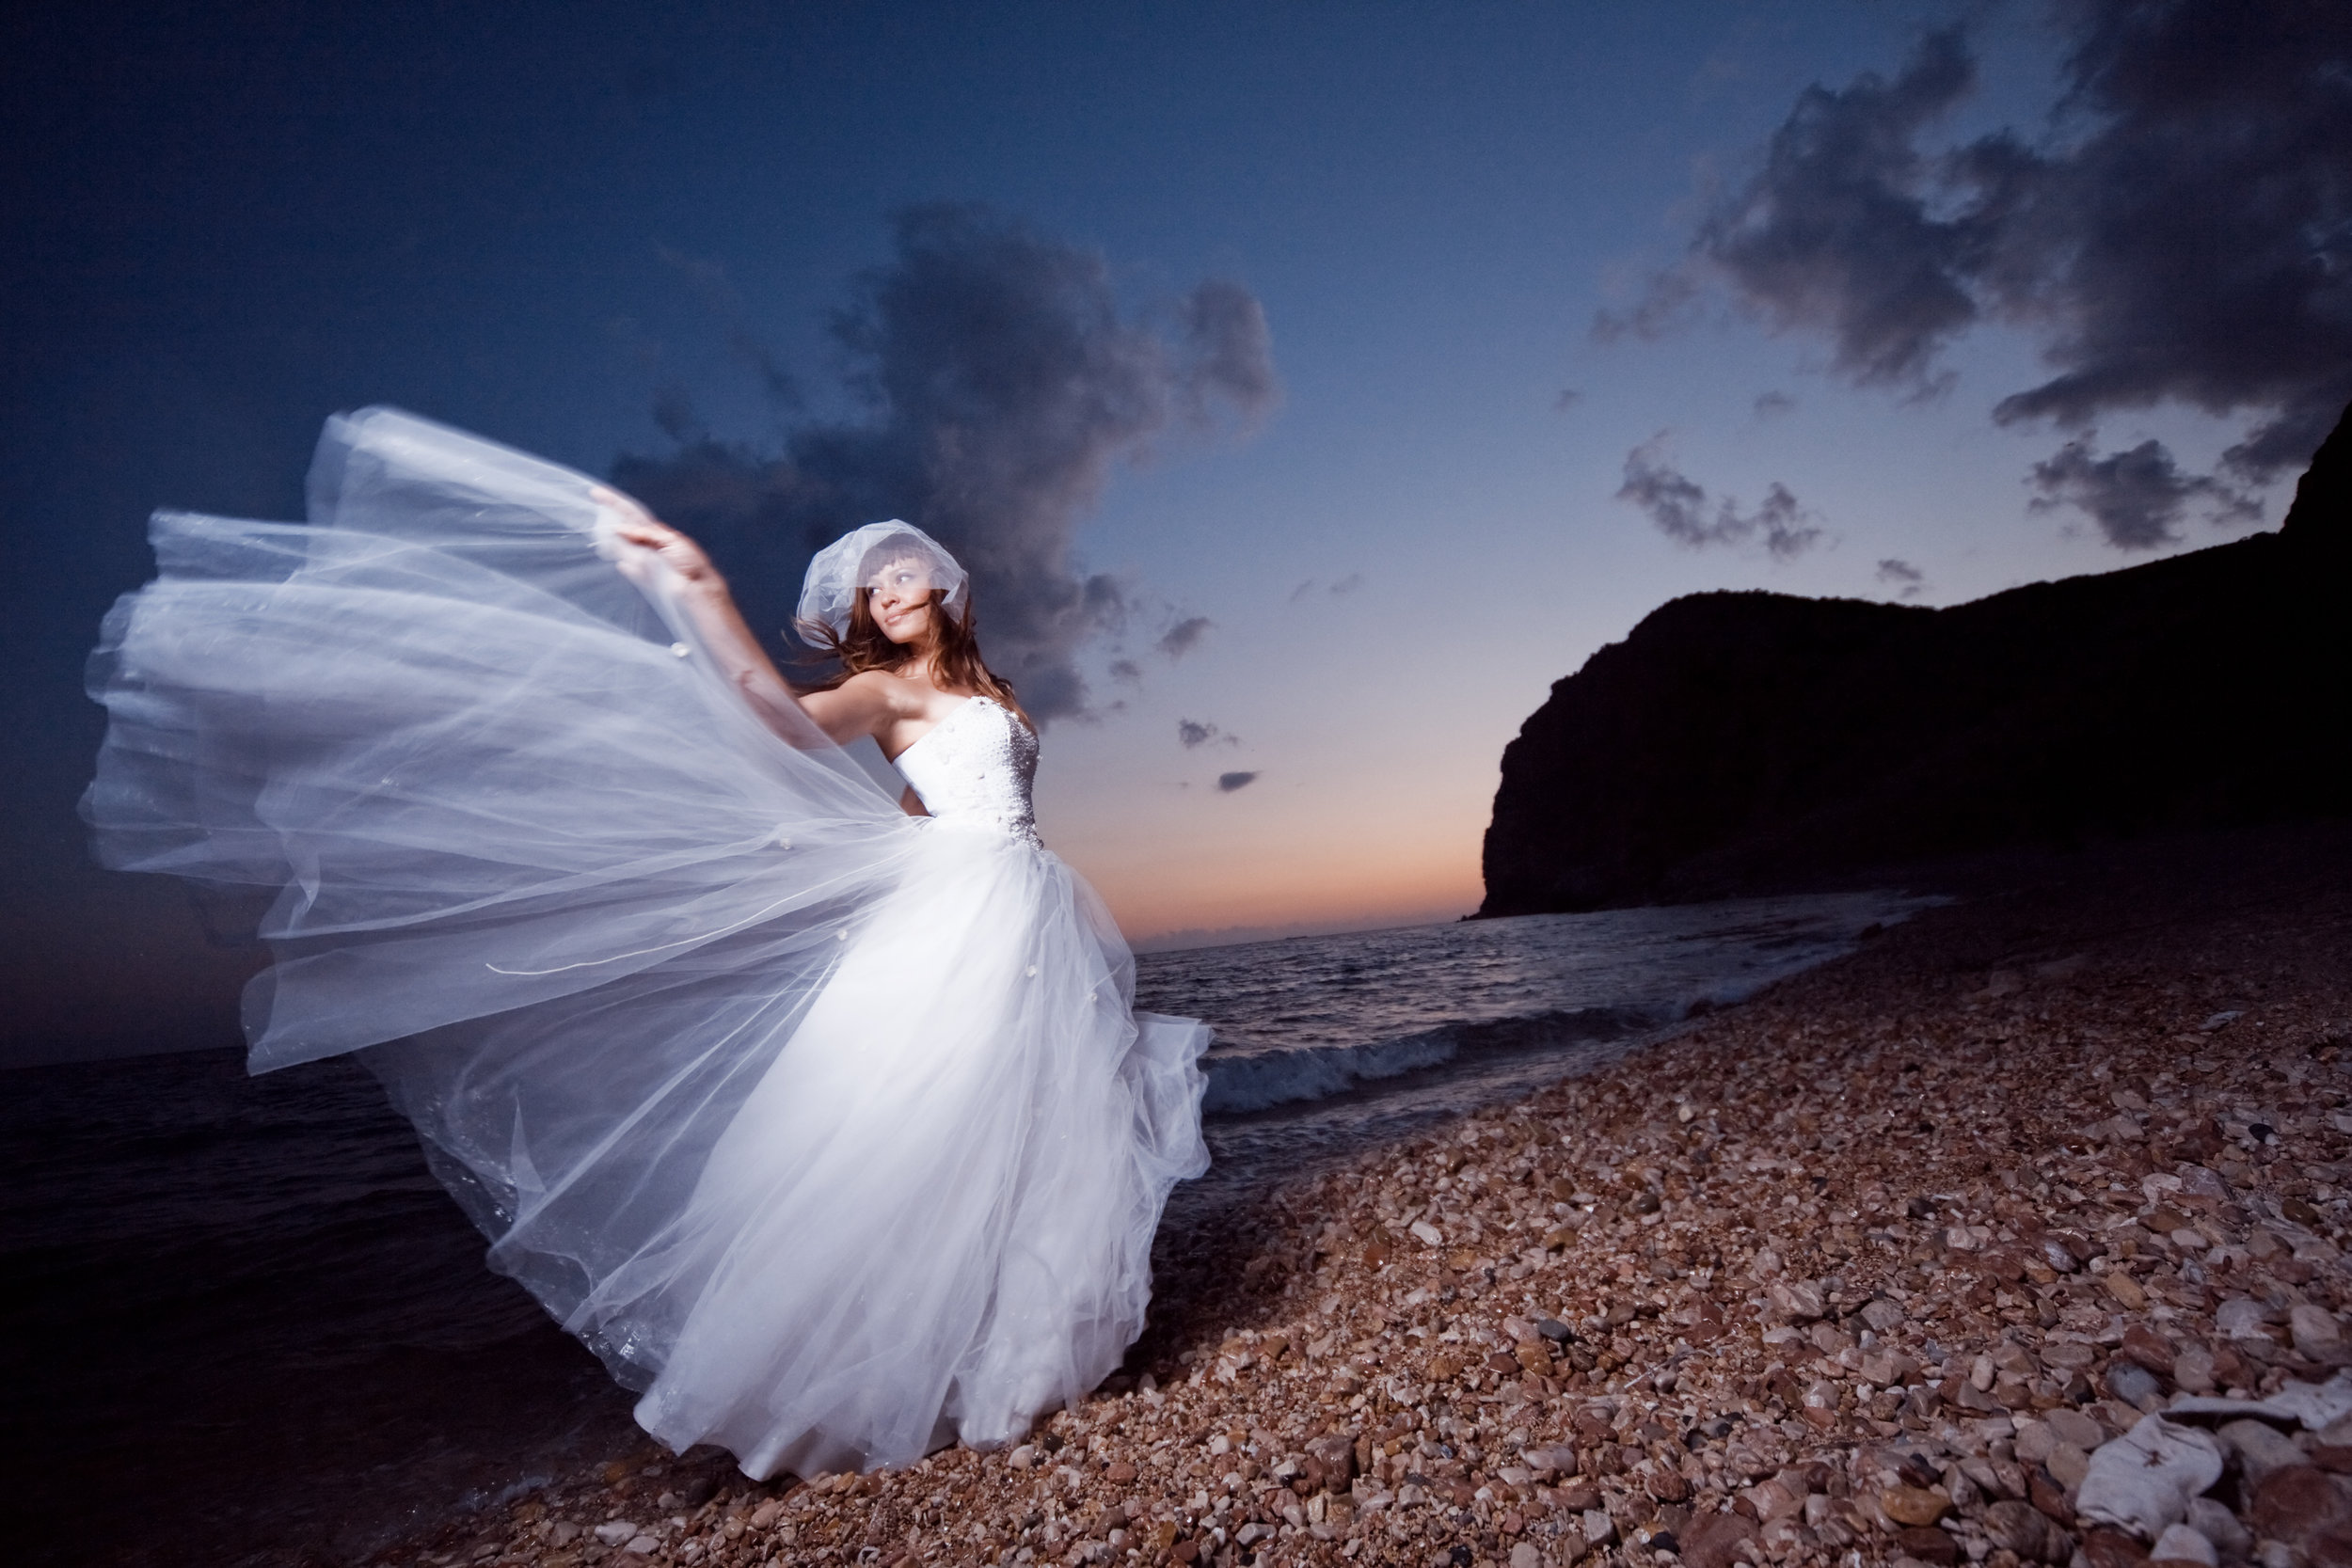 wedding planners Protaras, wedding photographers Cyprus